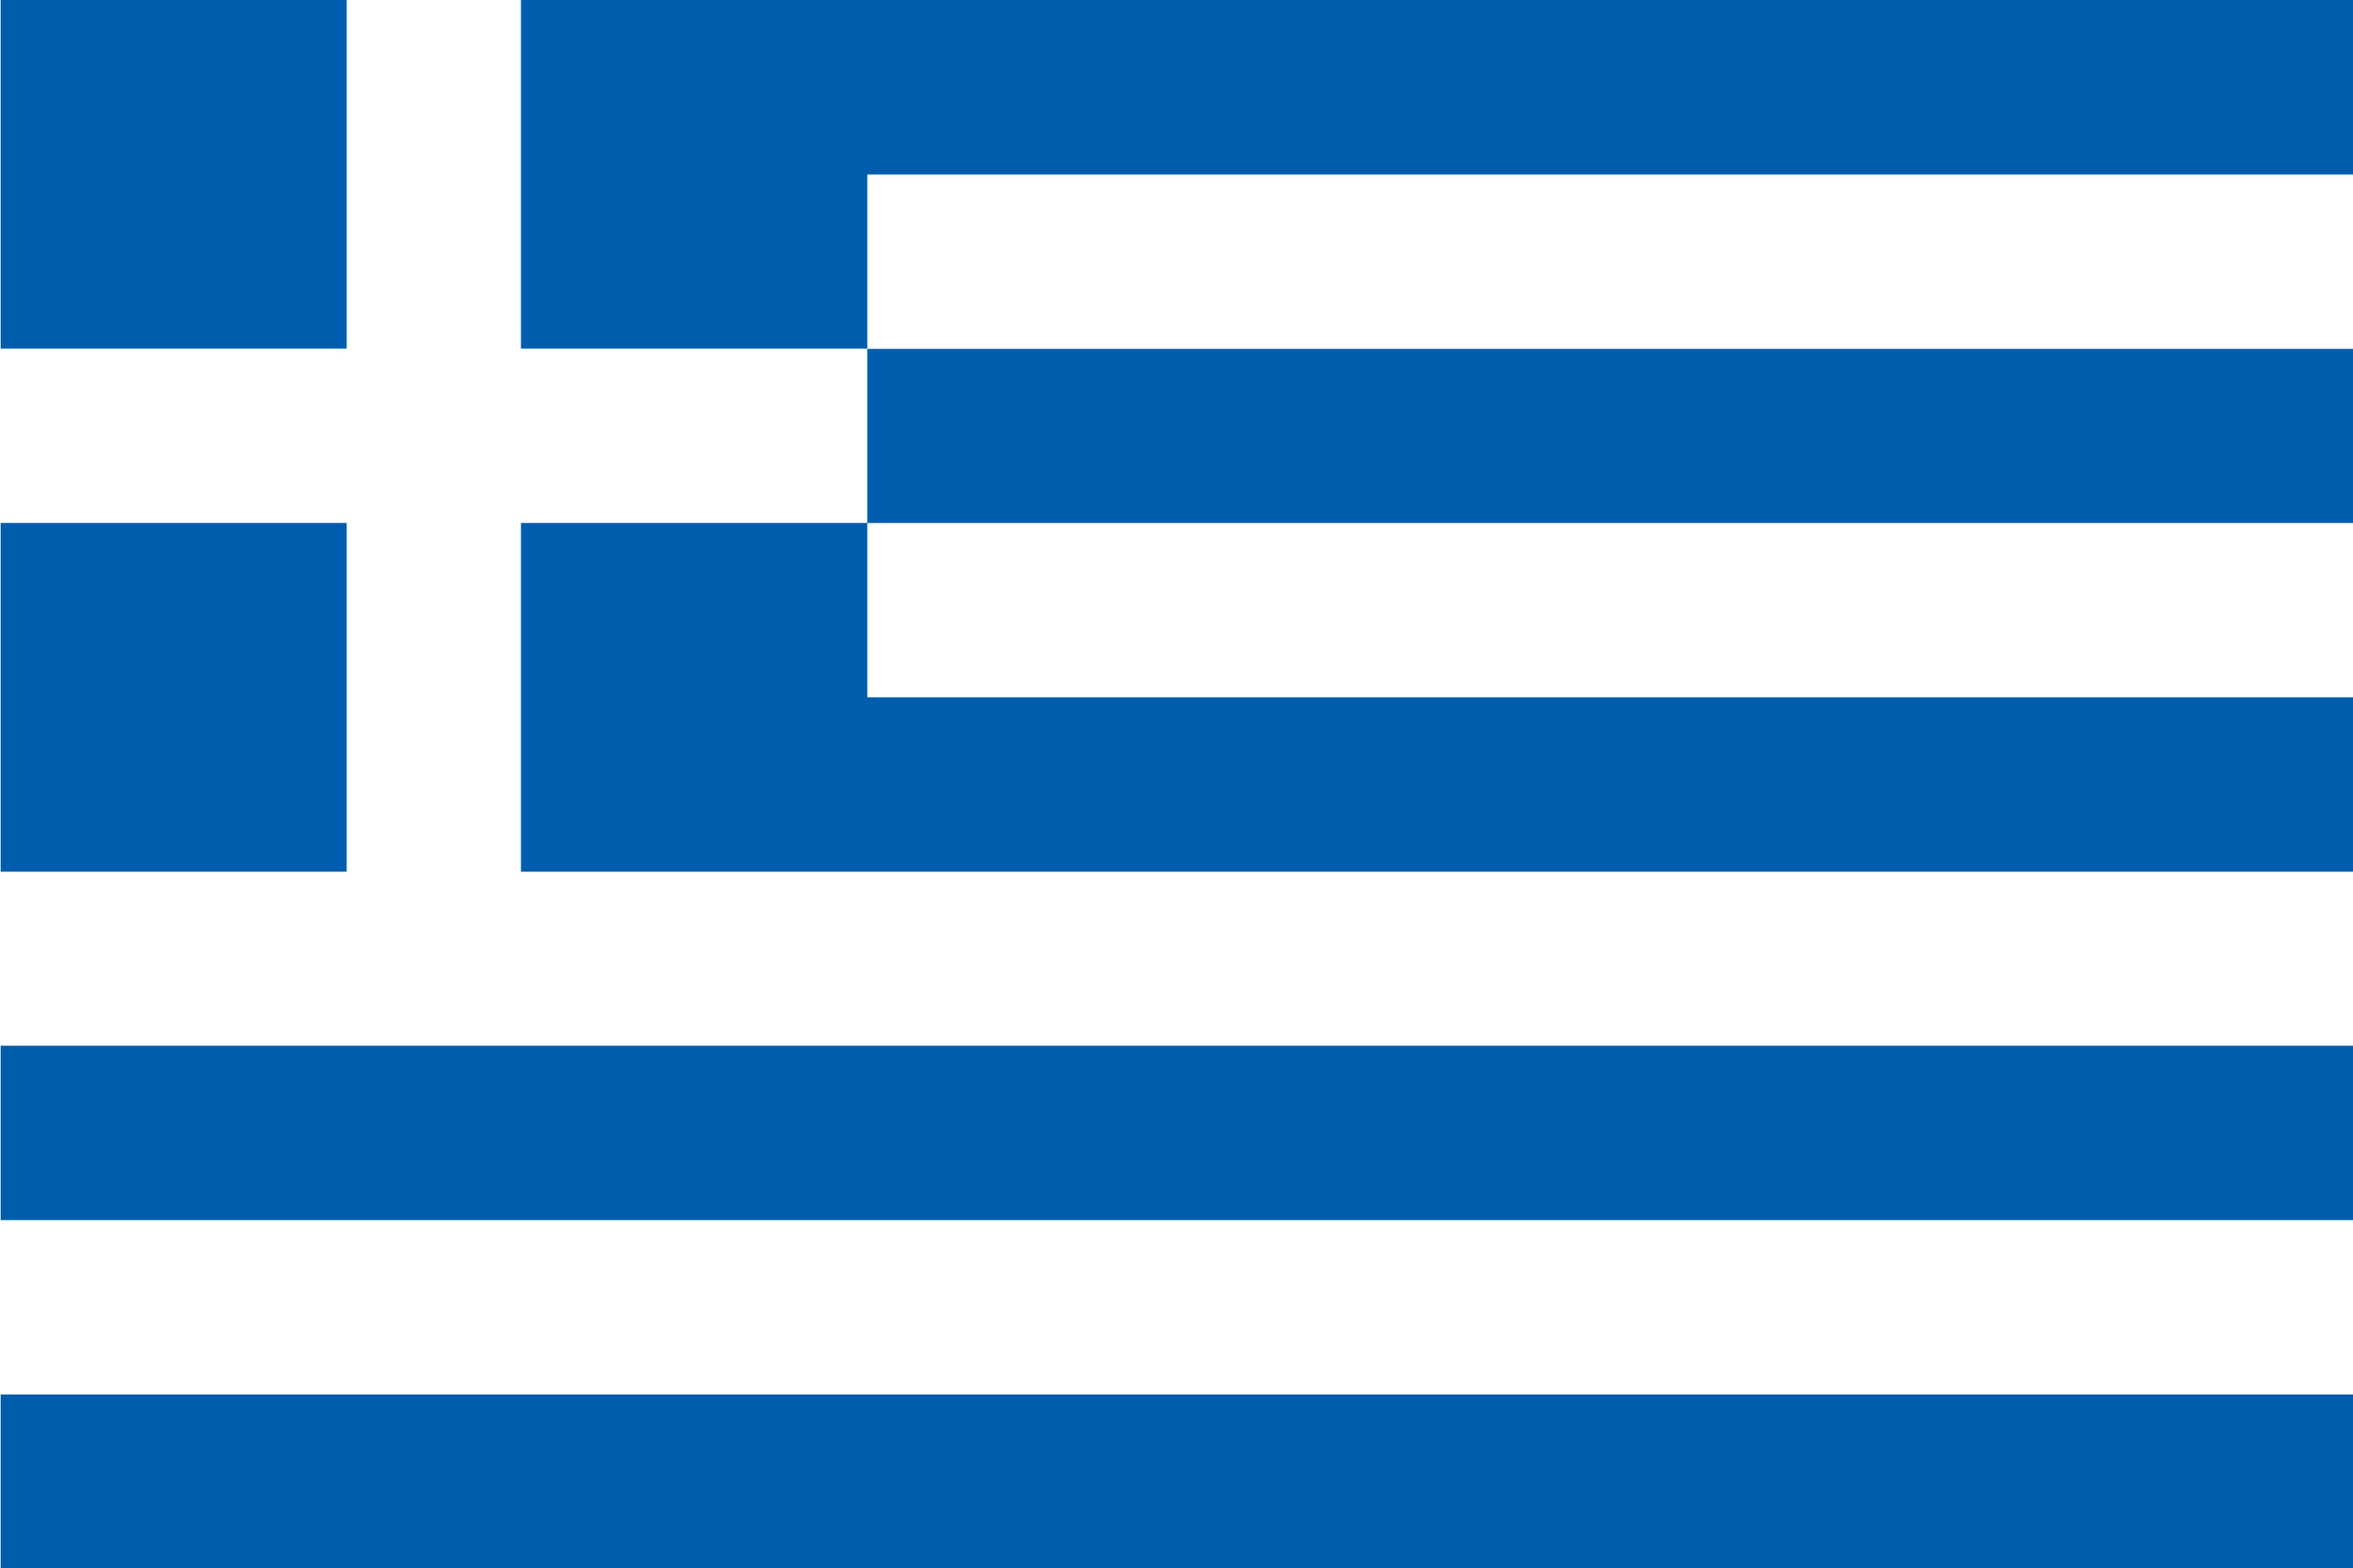 The flag of Greece consists of nine alternating stripes of blue and white and a canton on the upper hoist side